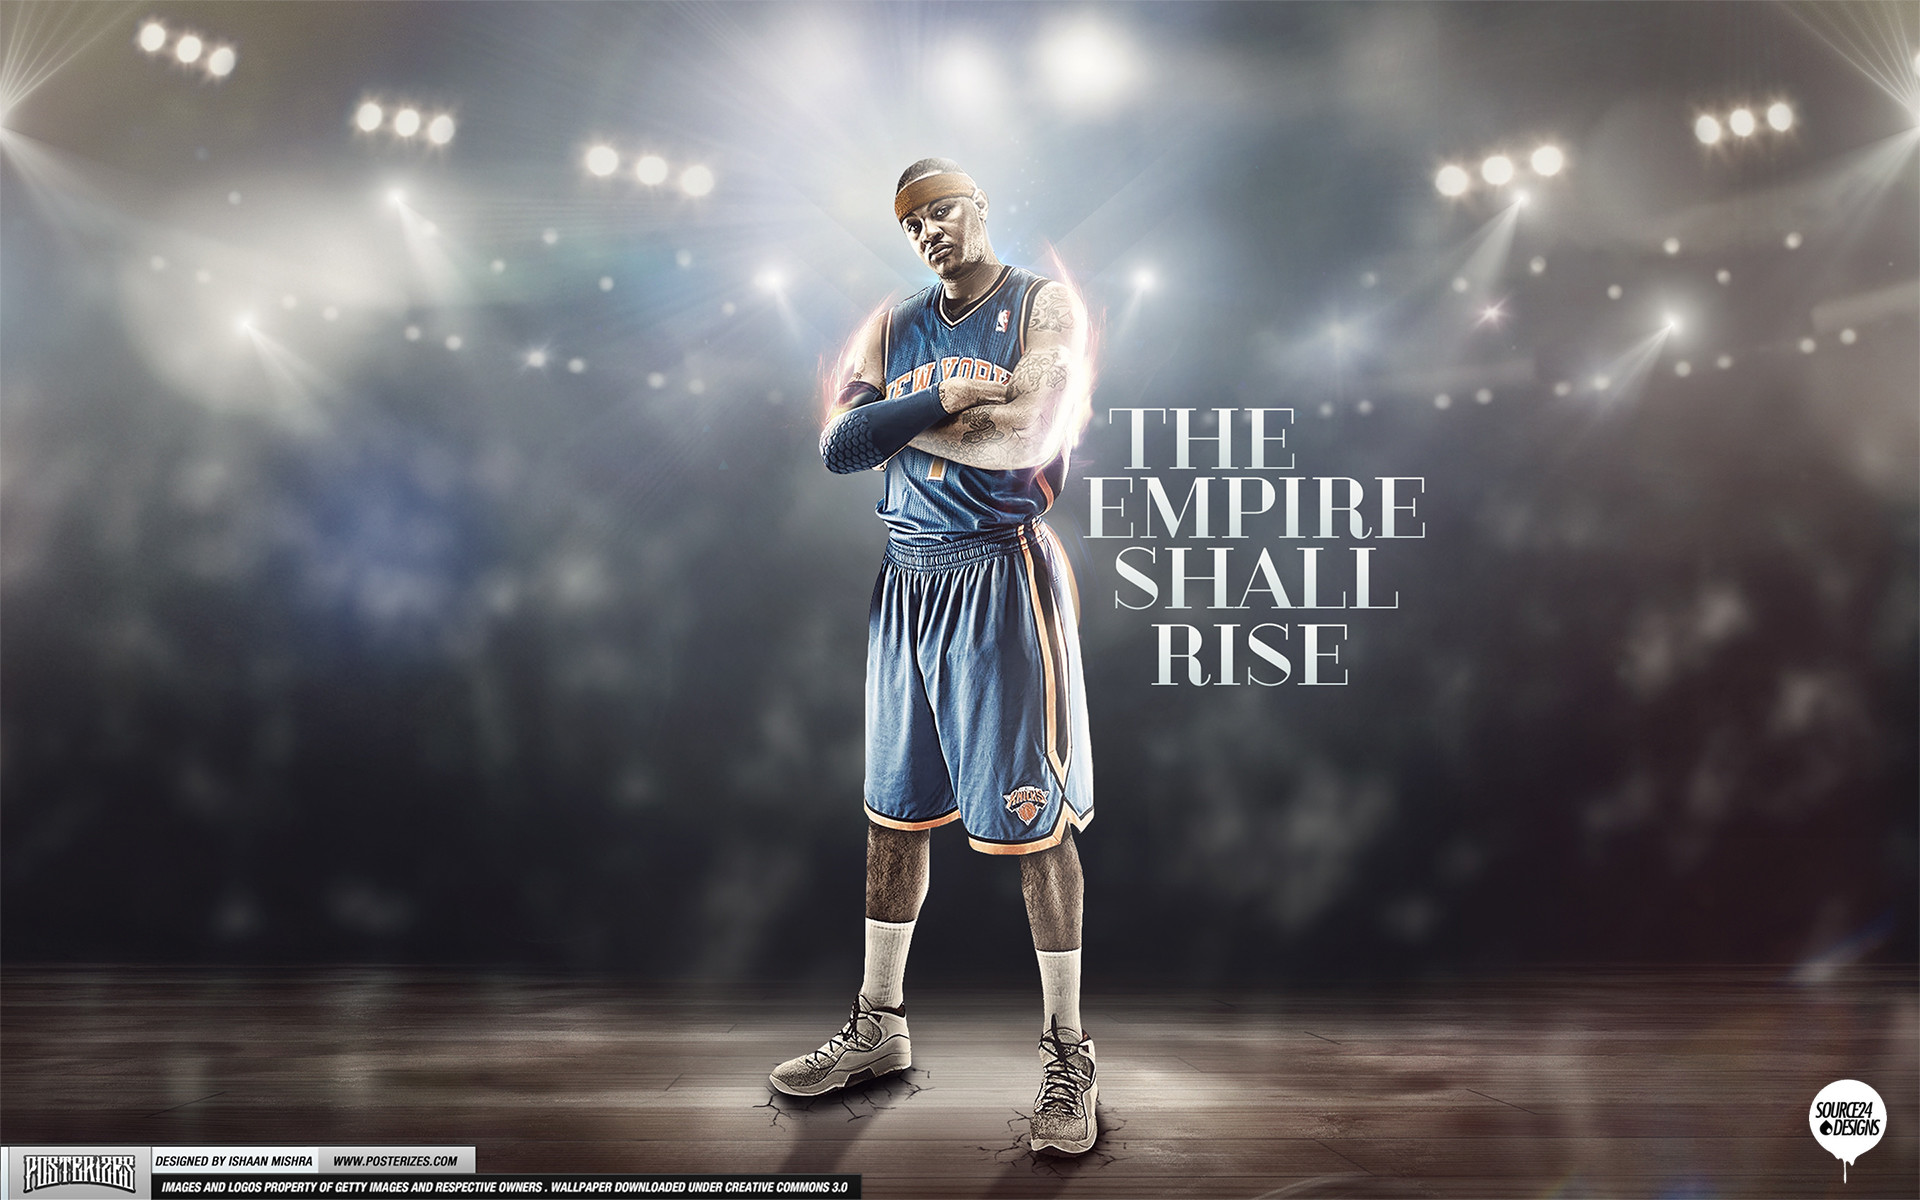 1920x1200 Carmelo Anthony Knicks Empire Wallpaper by IshaanMishra on ... Carmelo  Anthony Wallpaper Knicks 2013